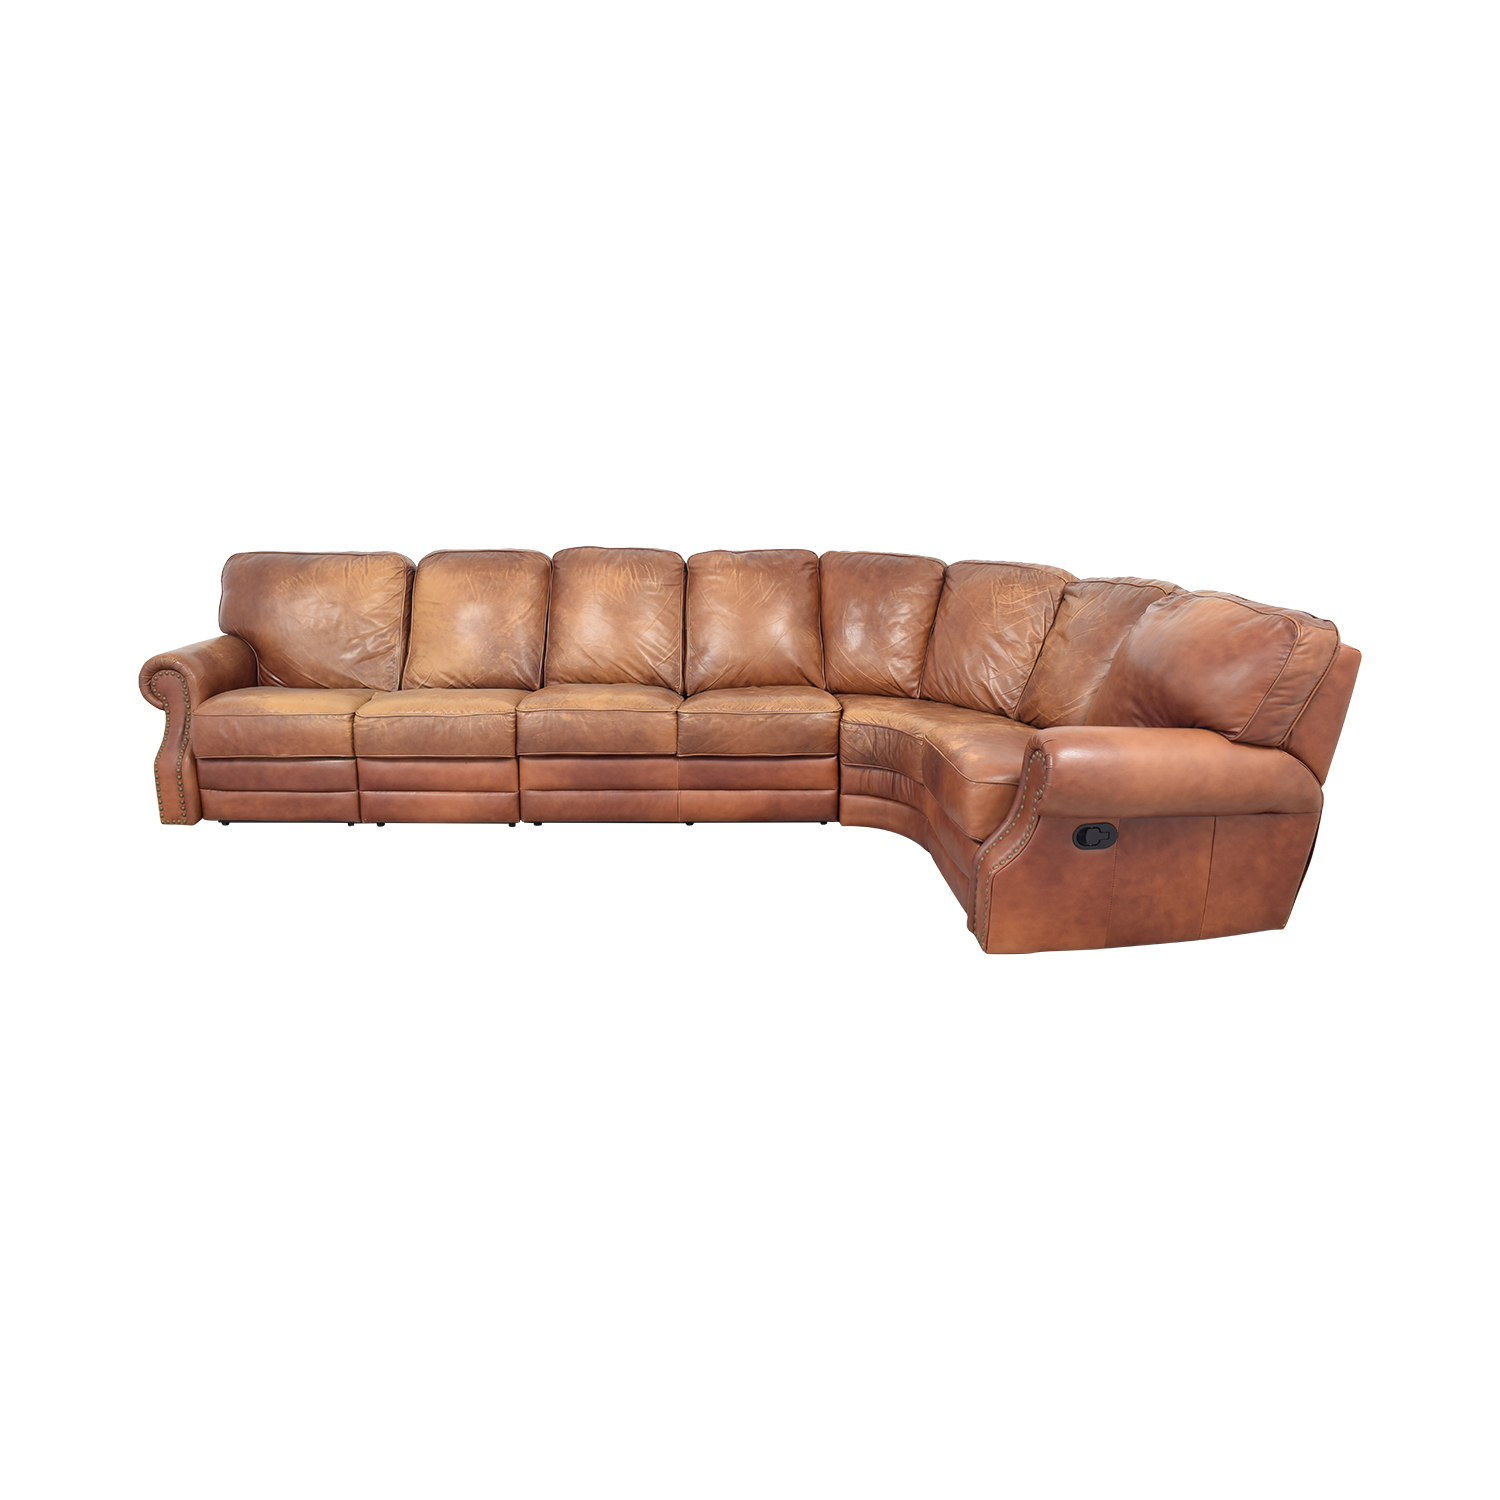 Excellent 70 Off Decoro Decoro Leather Sectional Sofa Sofas Unemploymentrelief Wooden Chair Designs For Living Room Unemploymentrelieforg